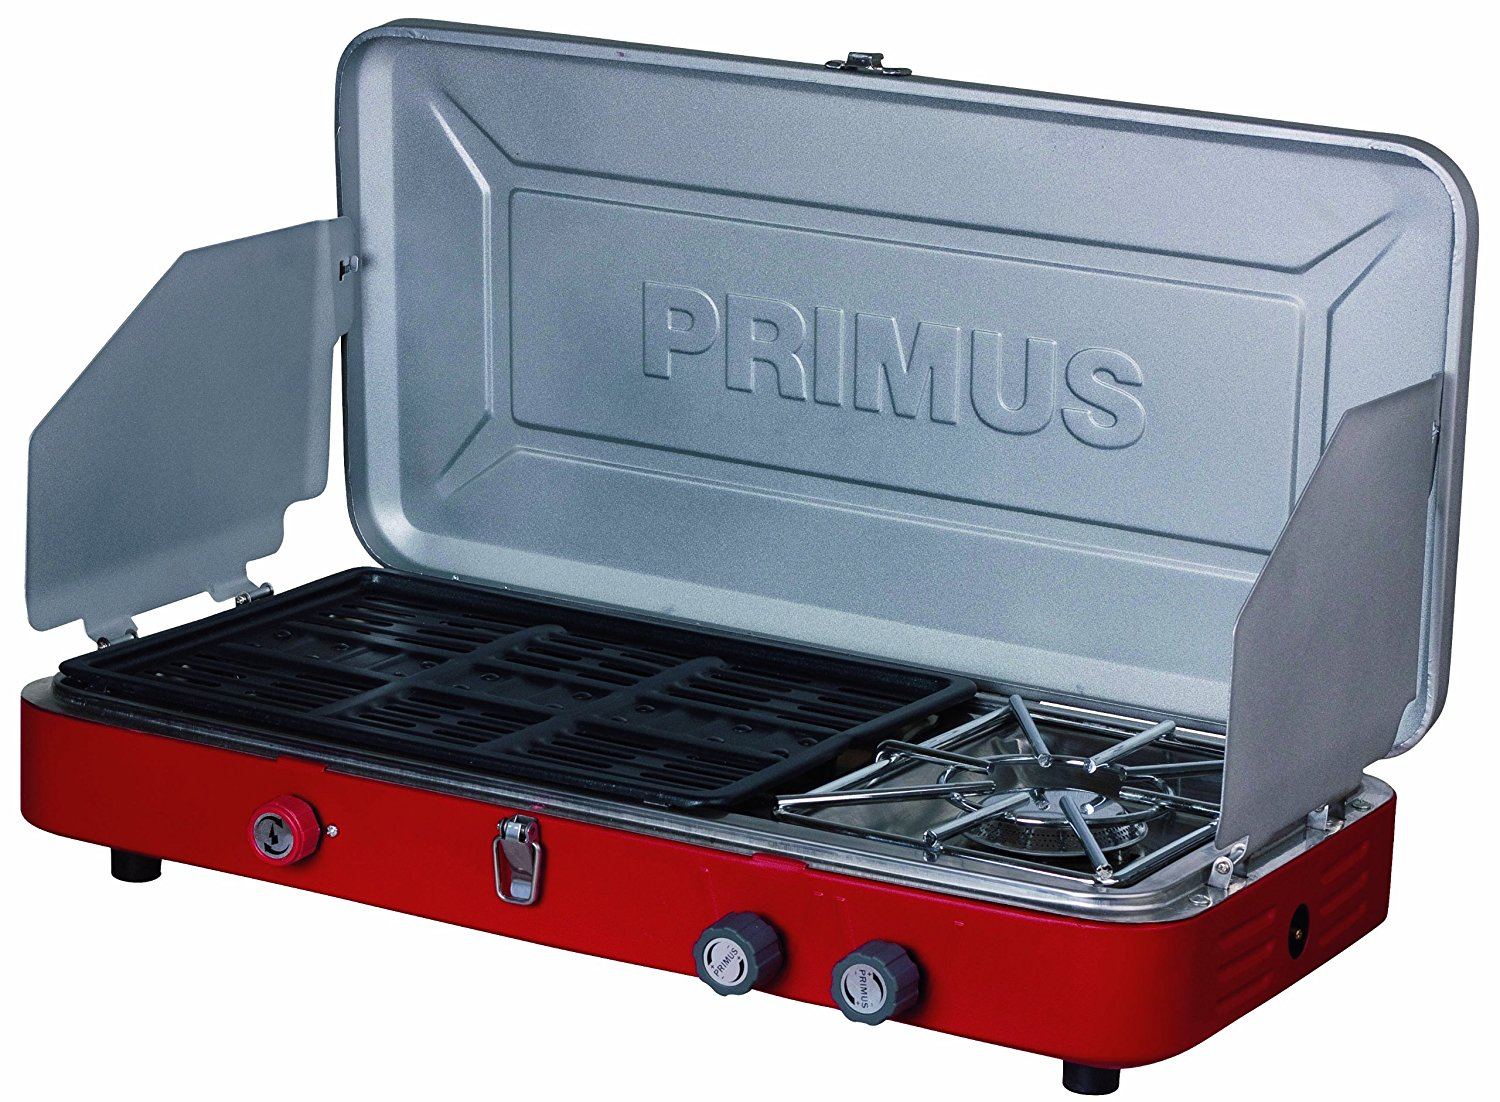 This Primus stove is easy to use on camping trips!